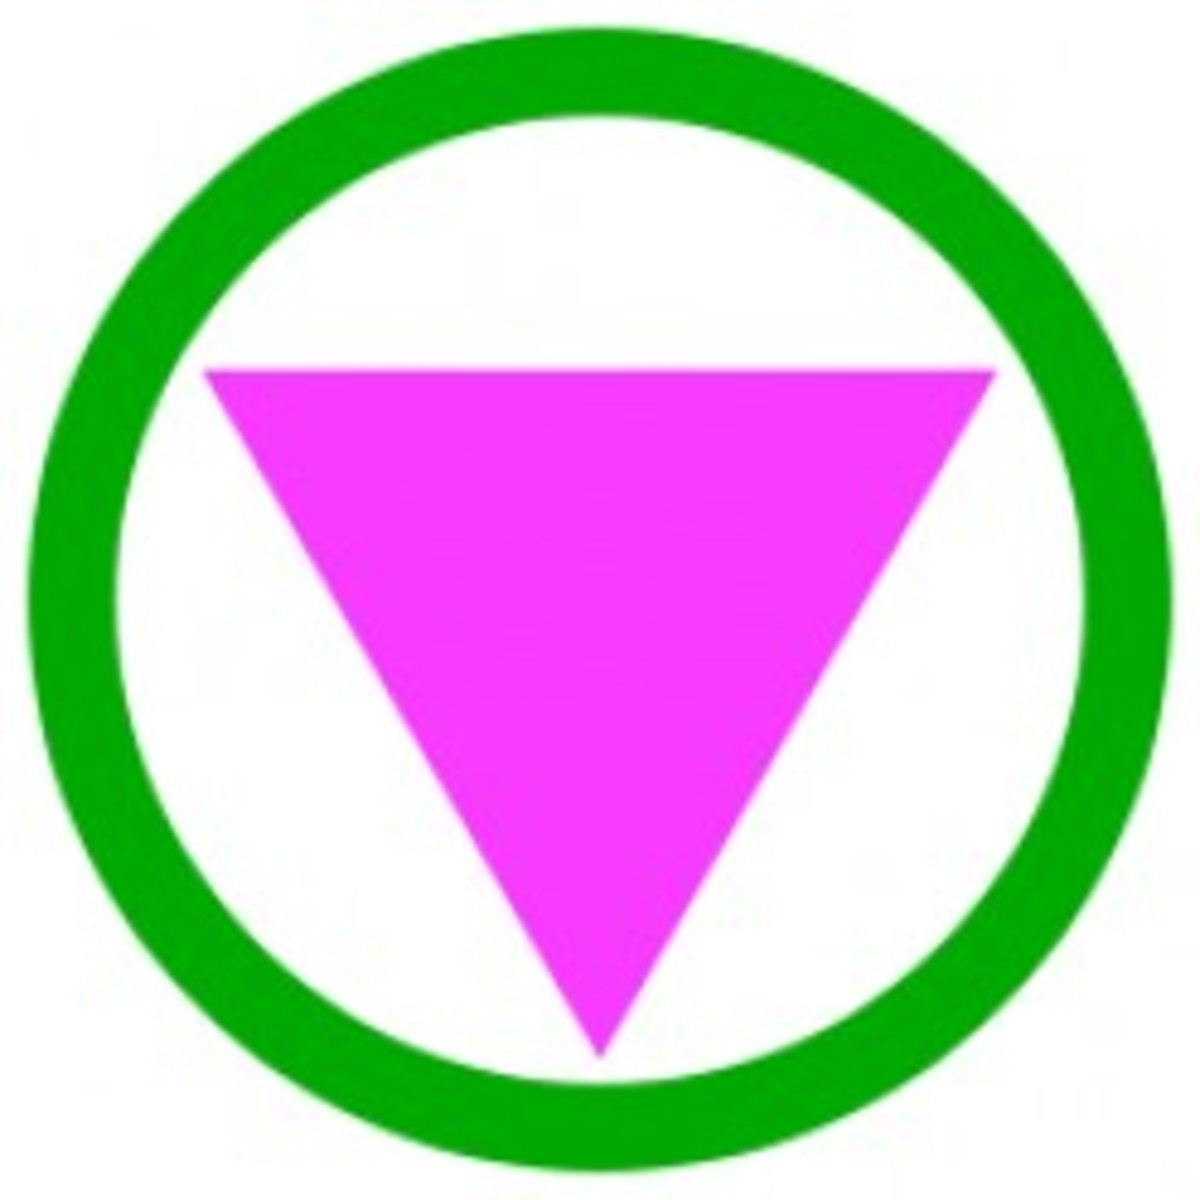 Straight ally and safe space symbol